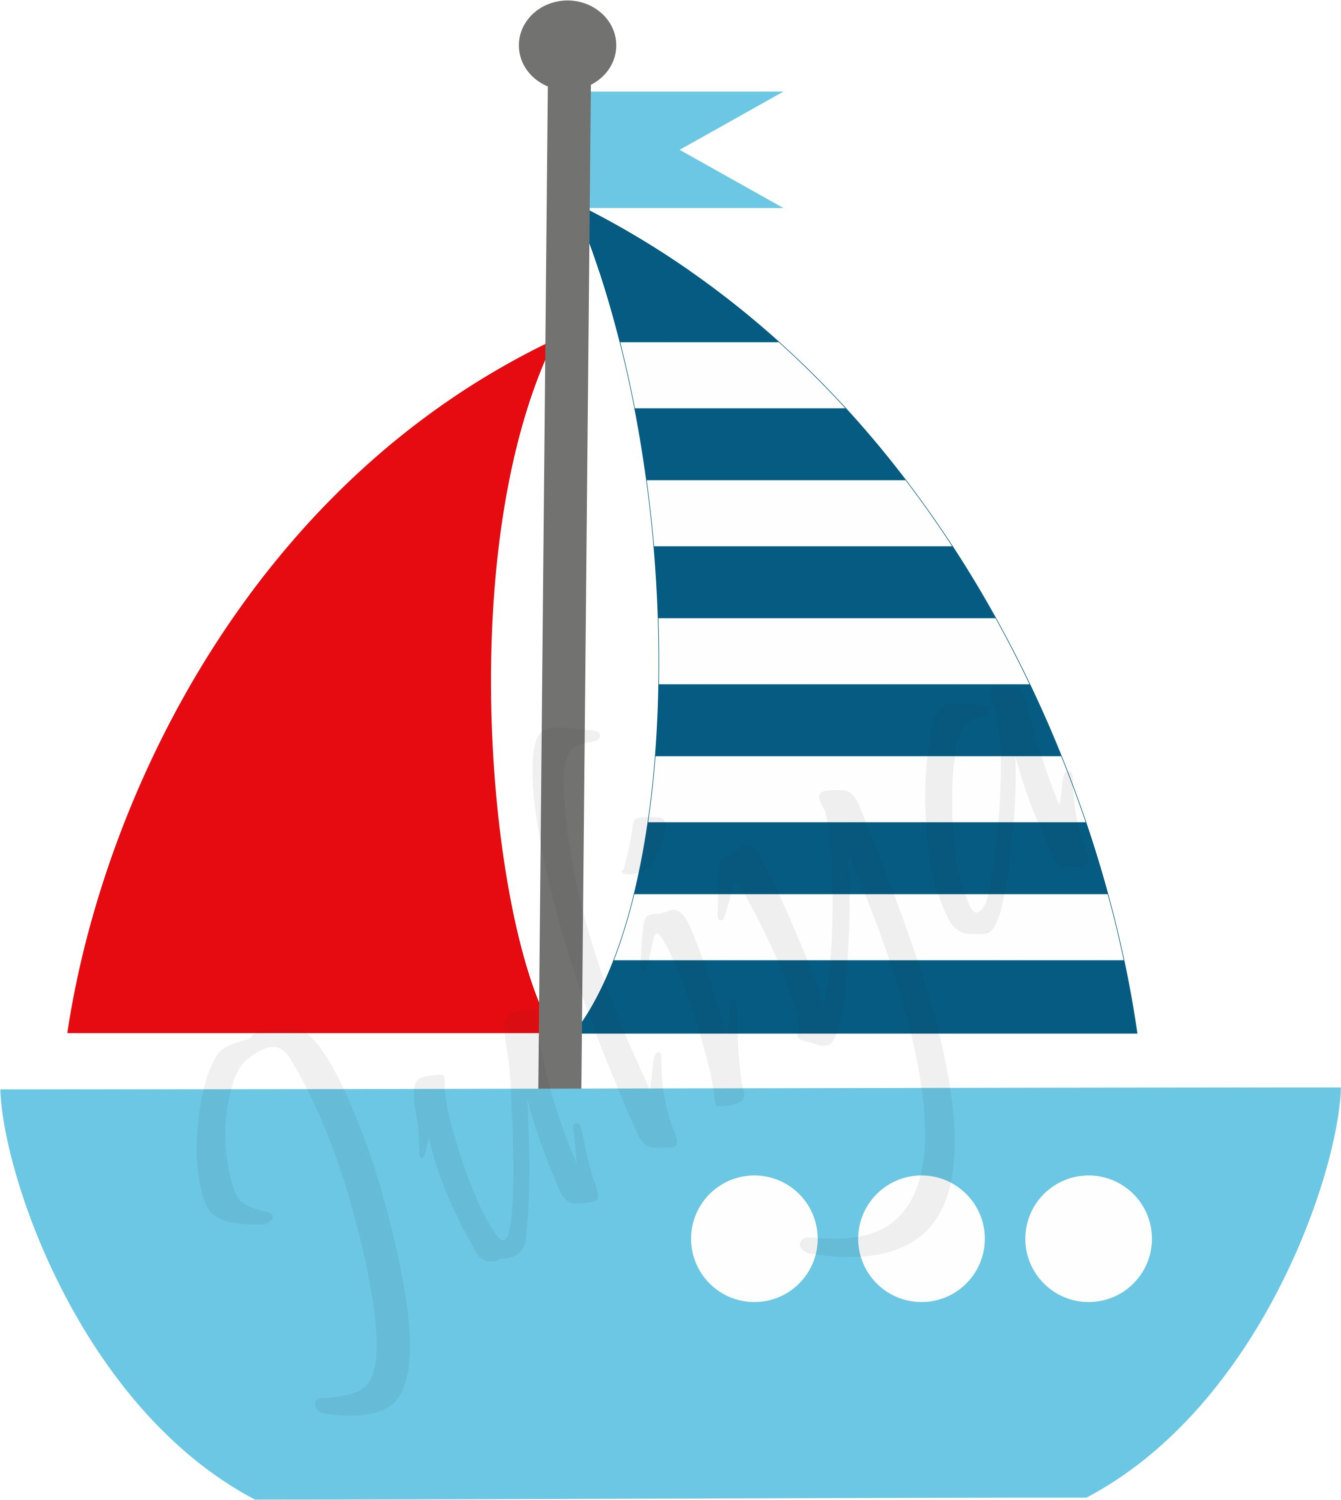 Sailboat clipart red and blue pencil in color sailboat.